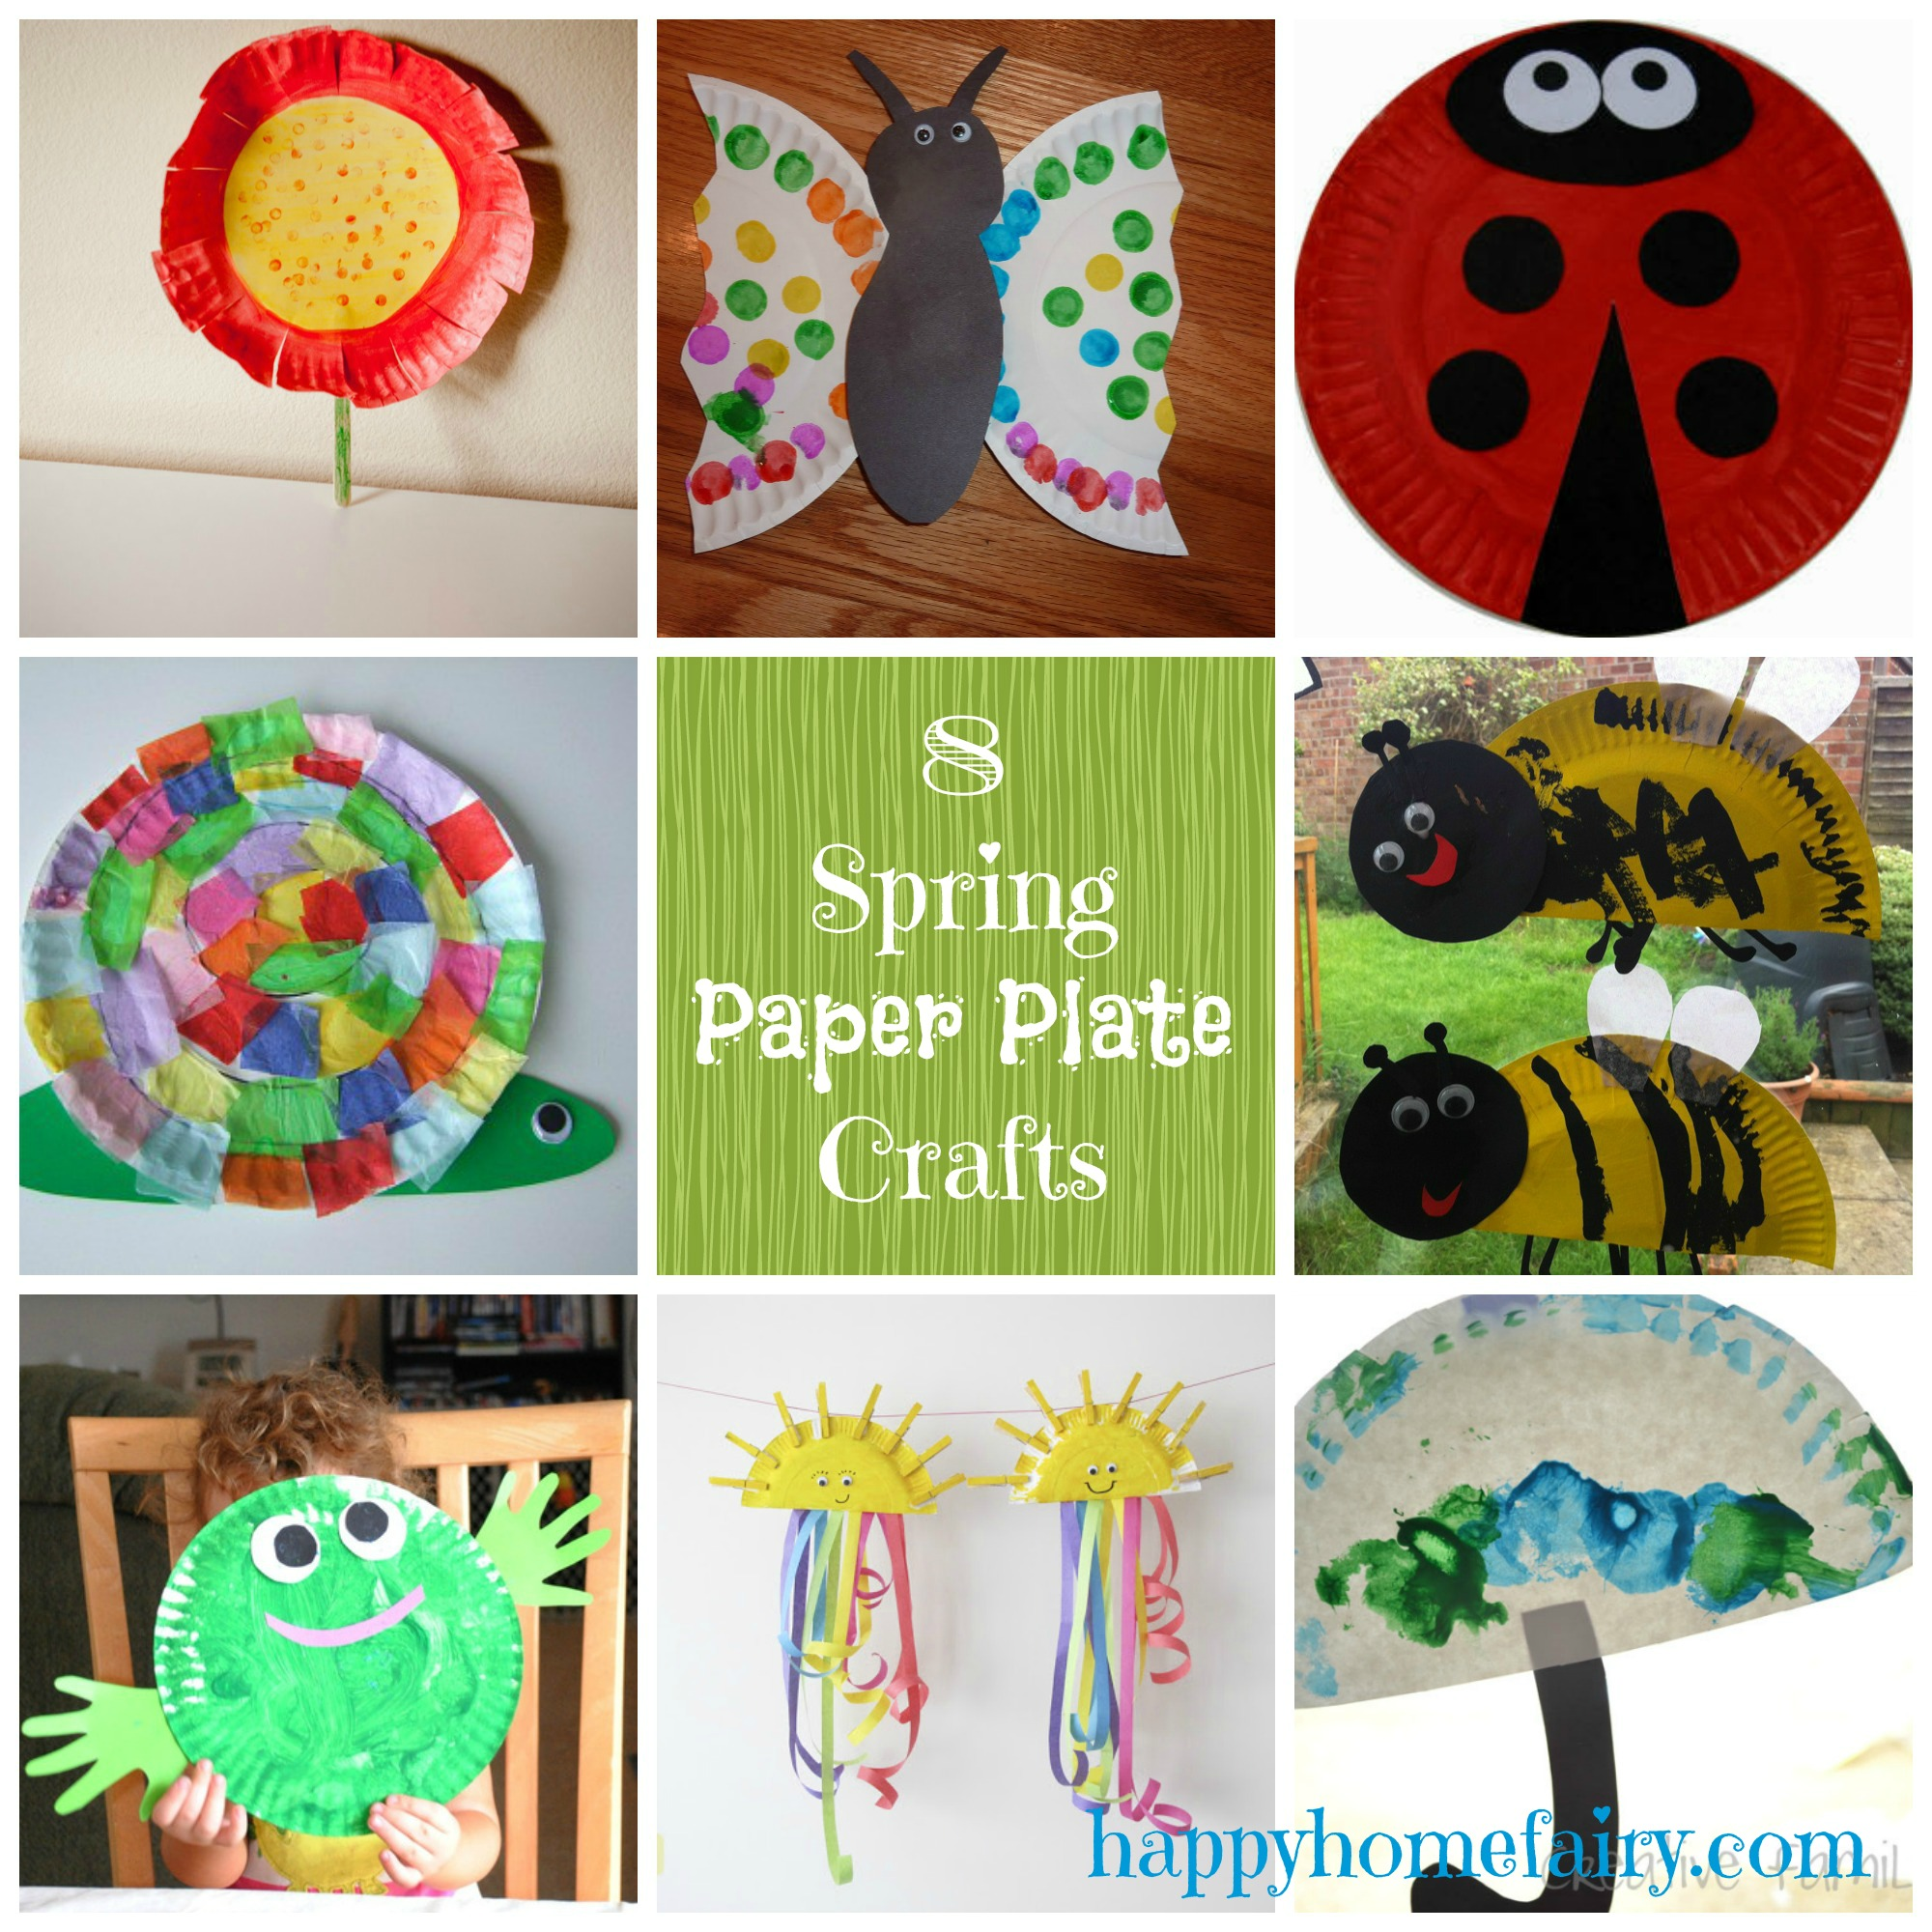 Paper Plate Crafts for Spring : paper plate crafts for spring - pezcame.com